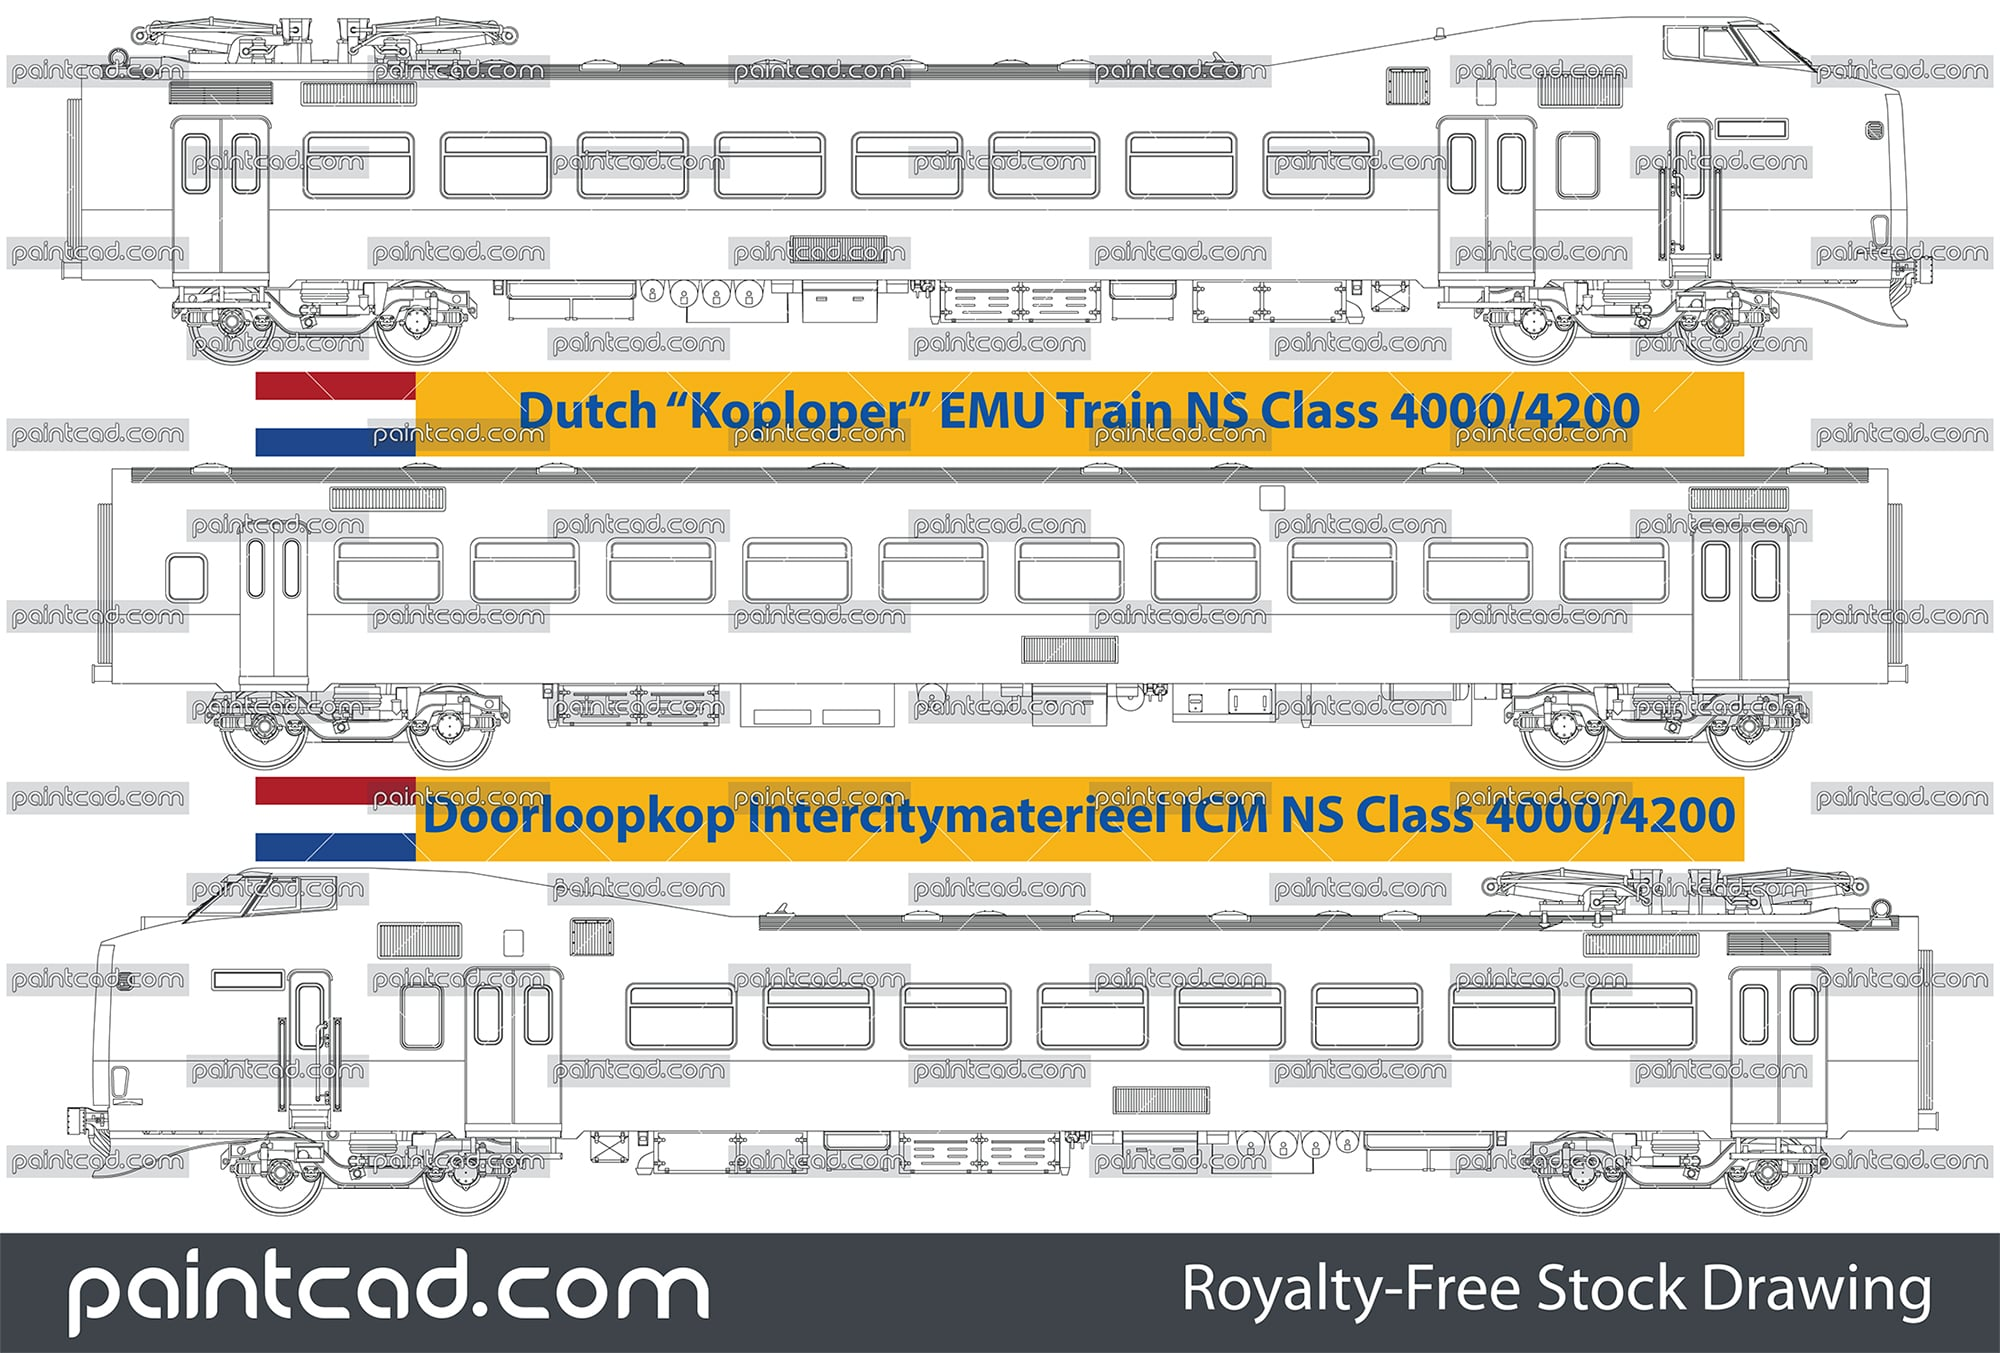 Koploper EMU train Class 4000/4200 by Nederlandse Spoorwegen - vector illustration